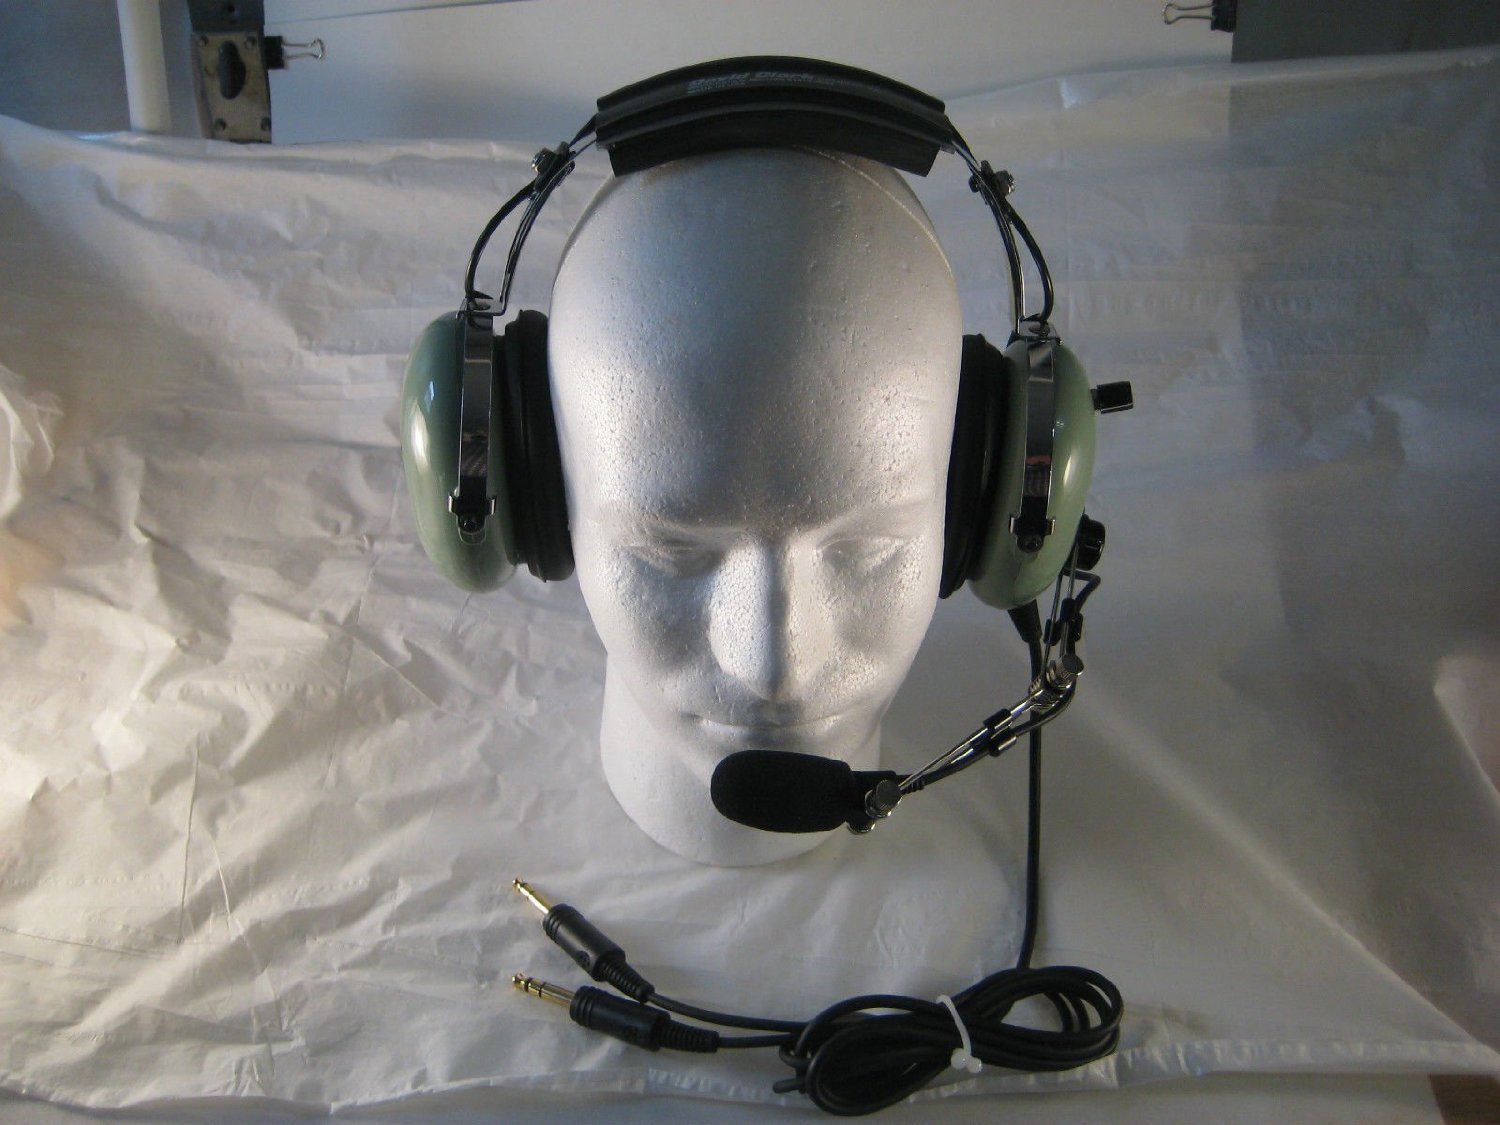 44593a46c93 Get Quotations · David Clark Remanufactured General Aviation Headset GAR76  with Volume Control